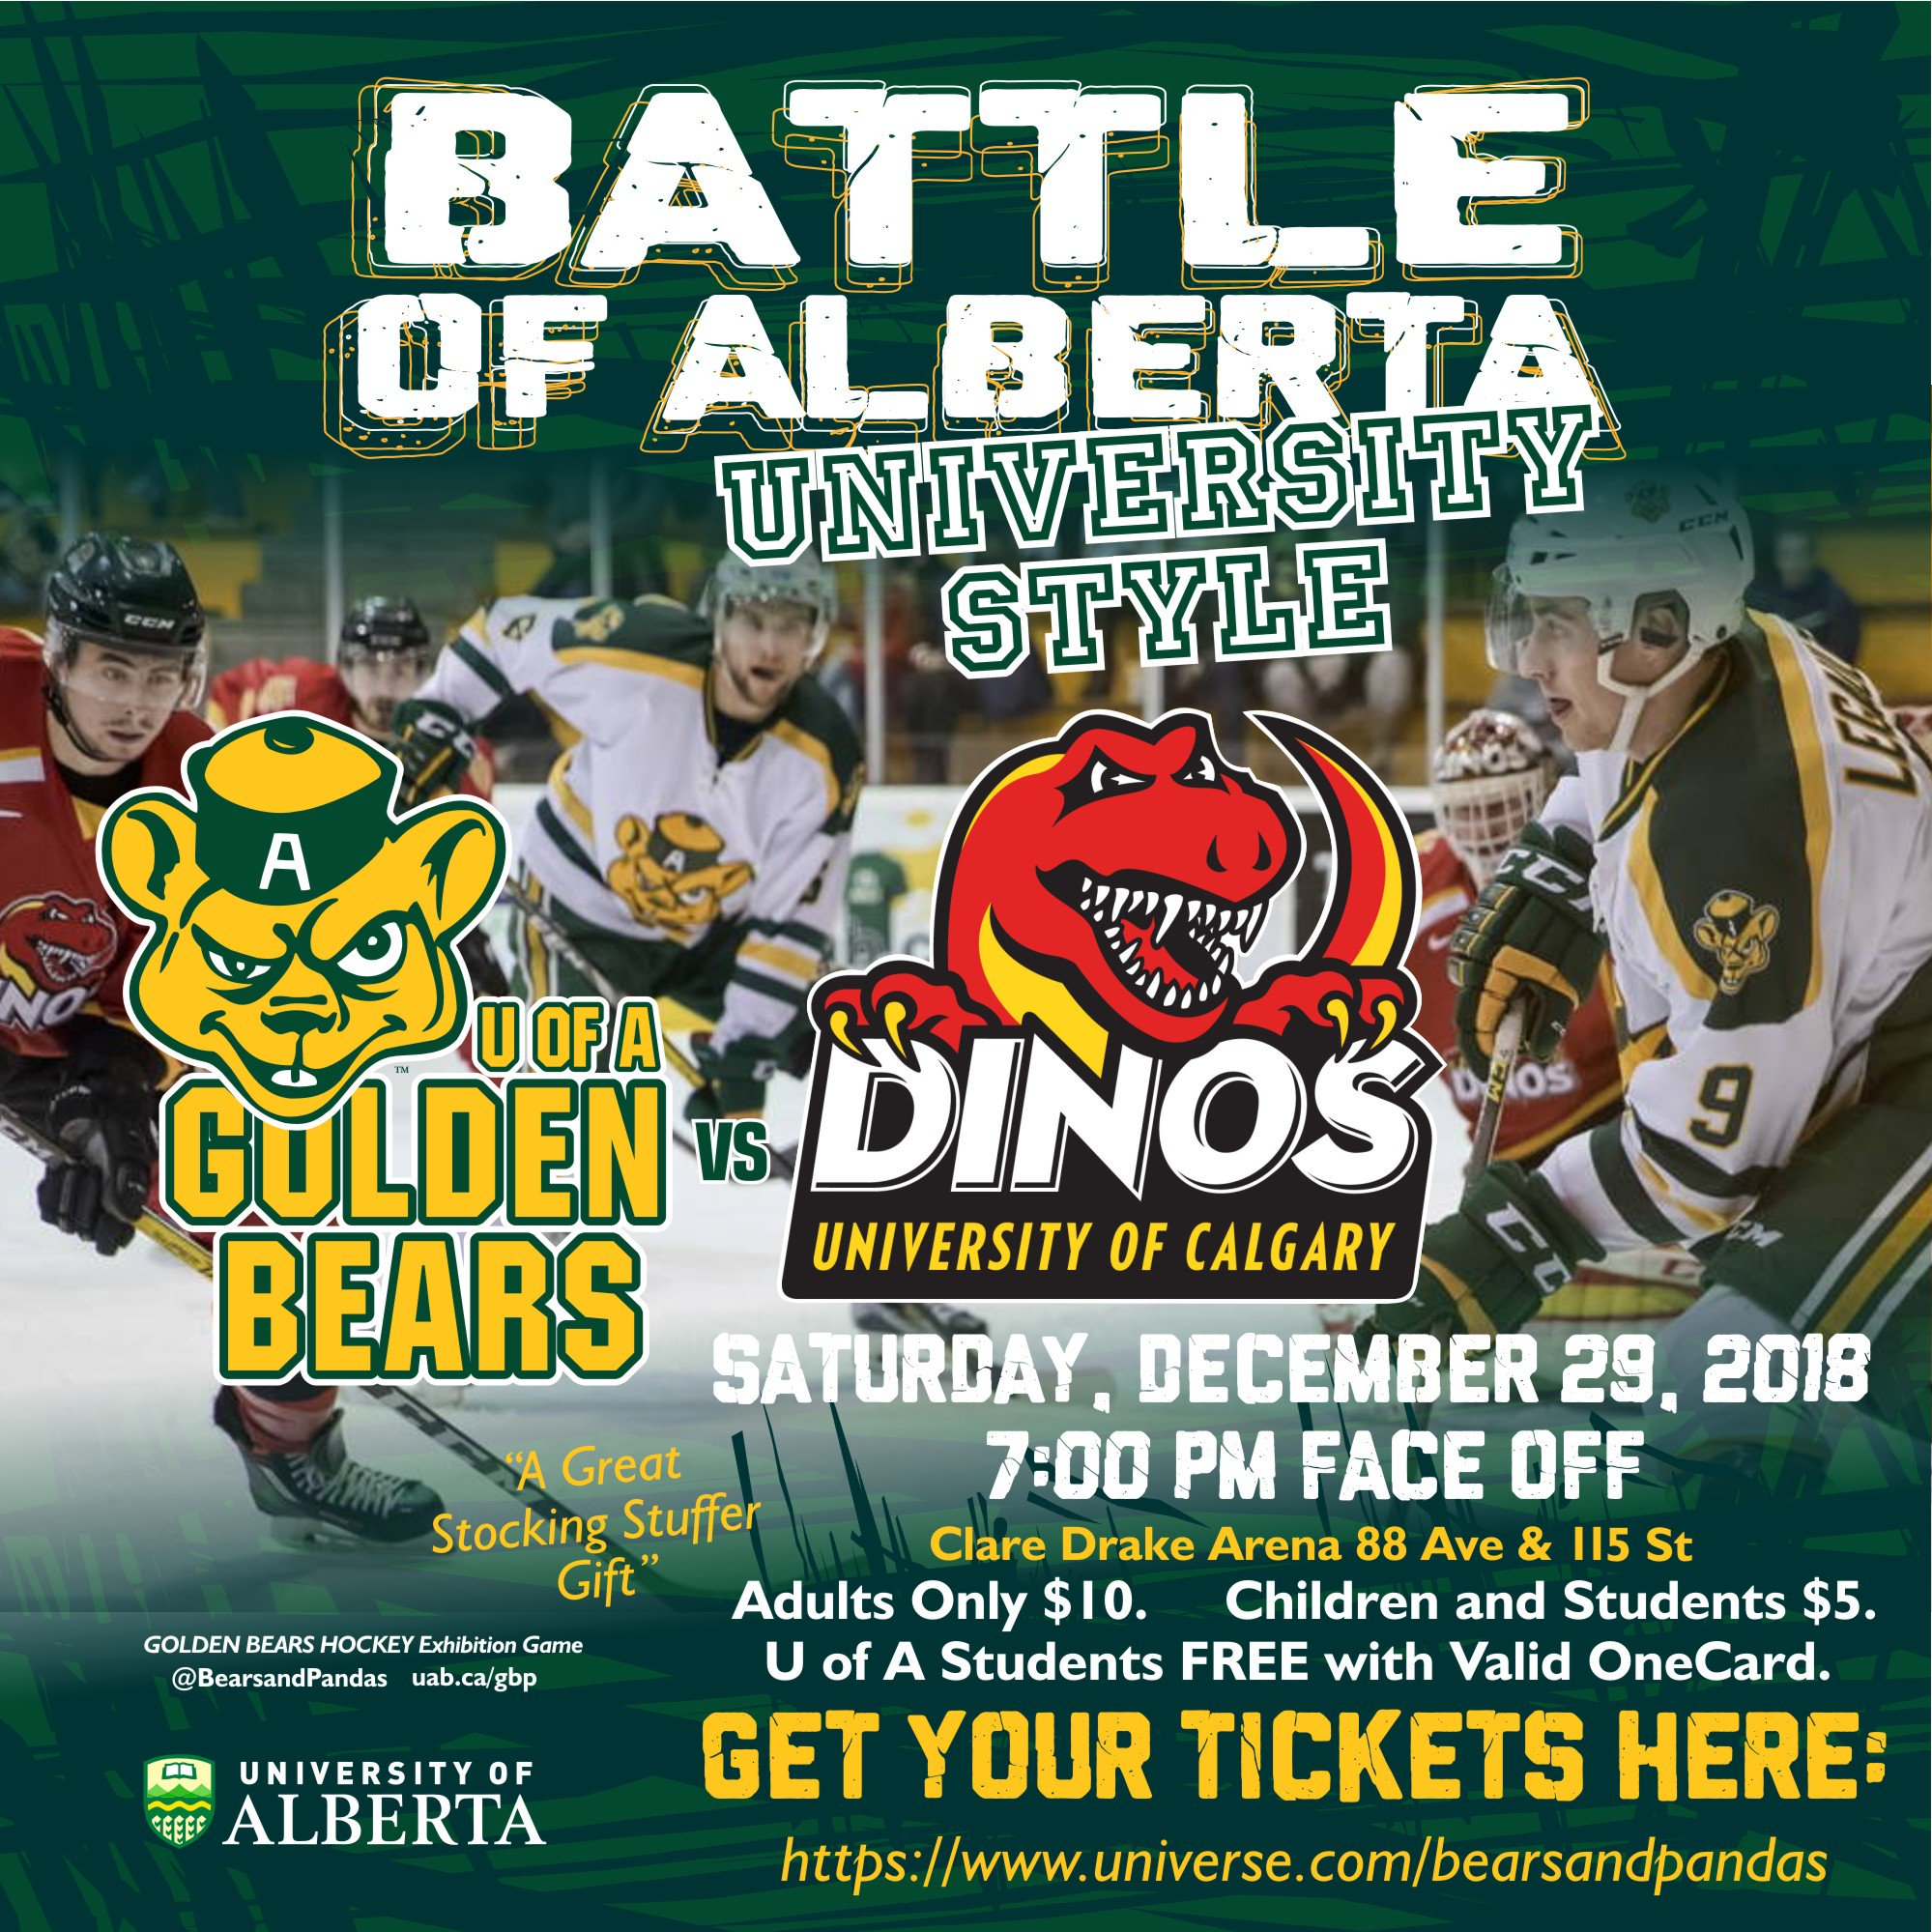 "Stan Marple GM Golden Bears Hockey on Twitter: ""Great Stocking Stuffer for  Christmas Battle of Alberta - University Style ! Adults only $ 10 Children  $ 5 @UAlberta students FREE with valid"